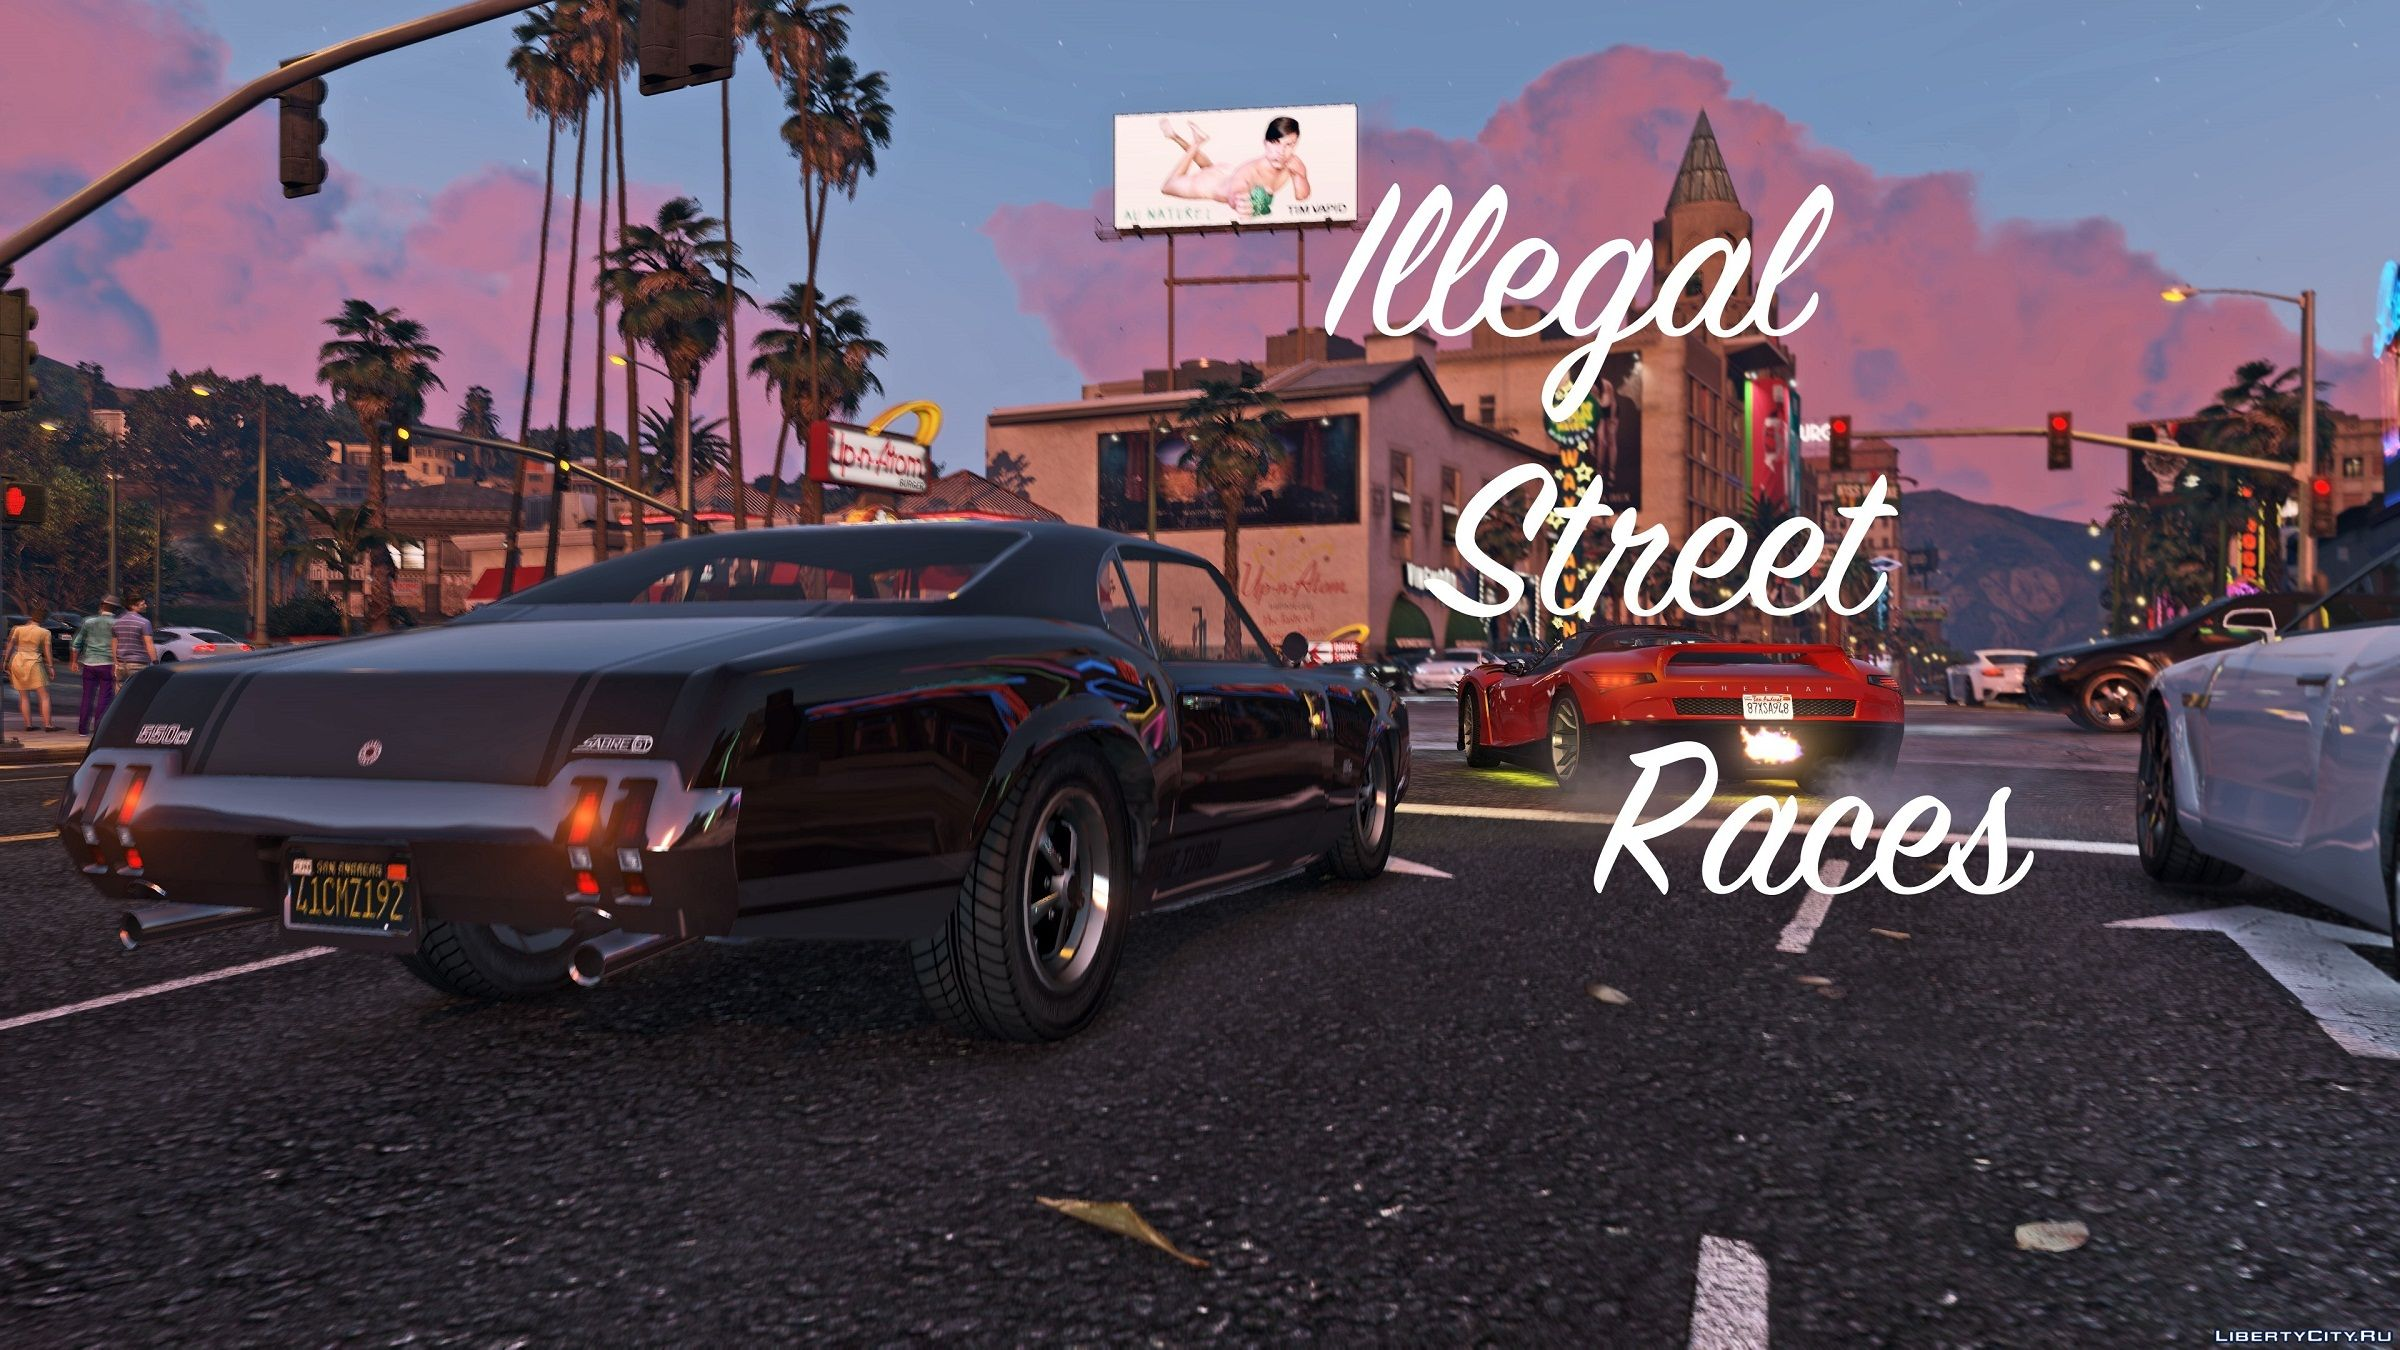 Illegal Street Races 1 1 For Gta 5